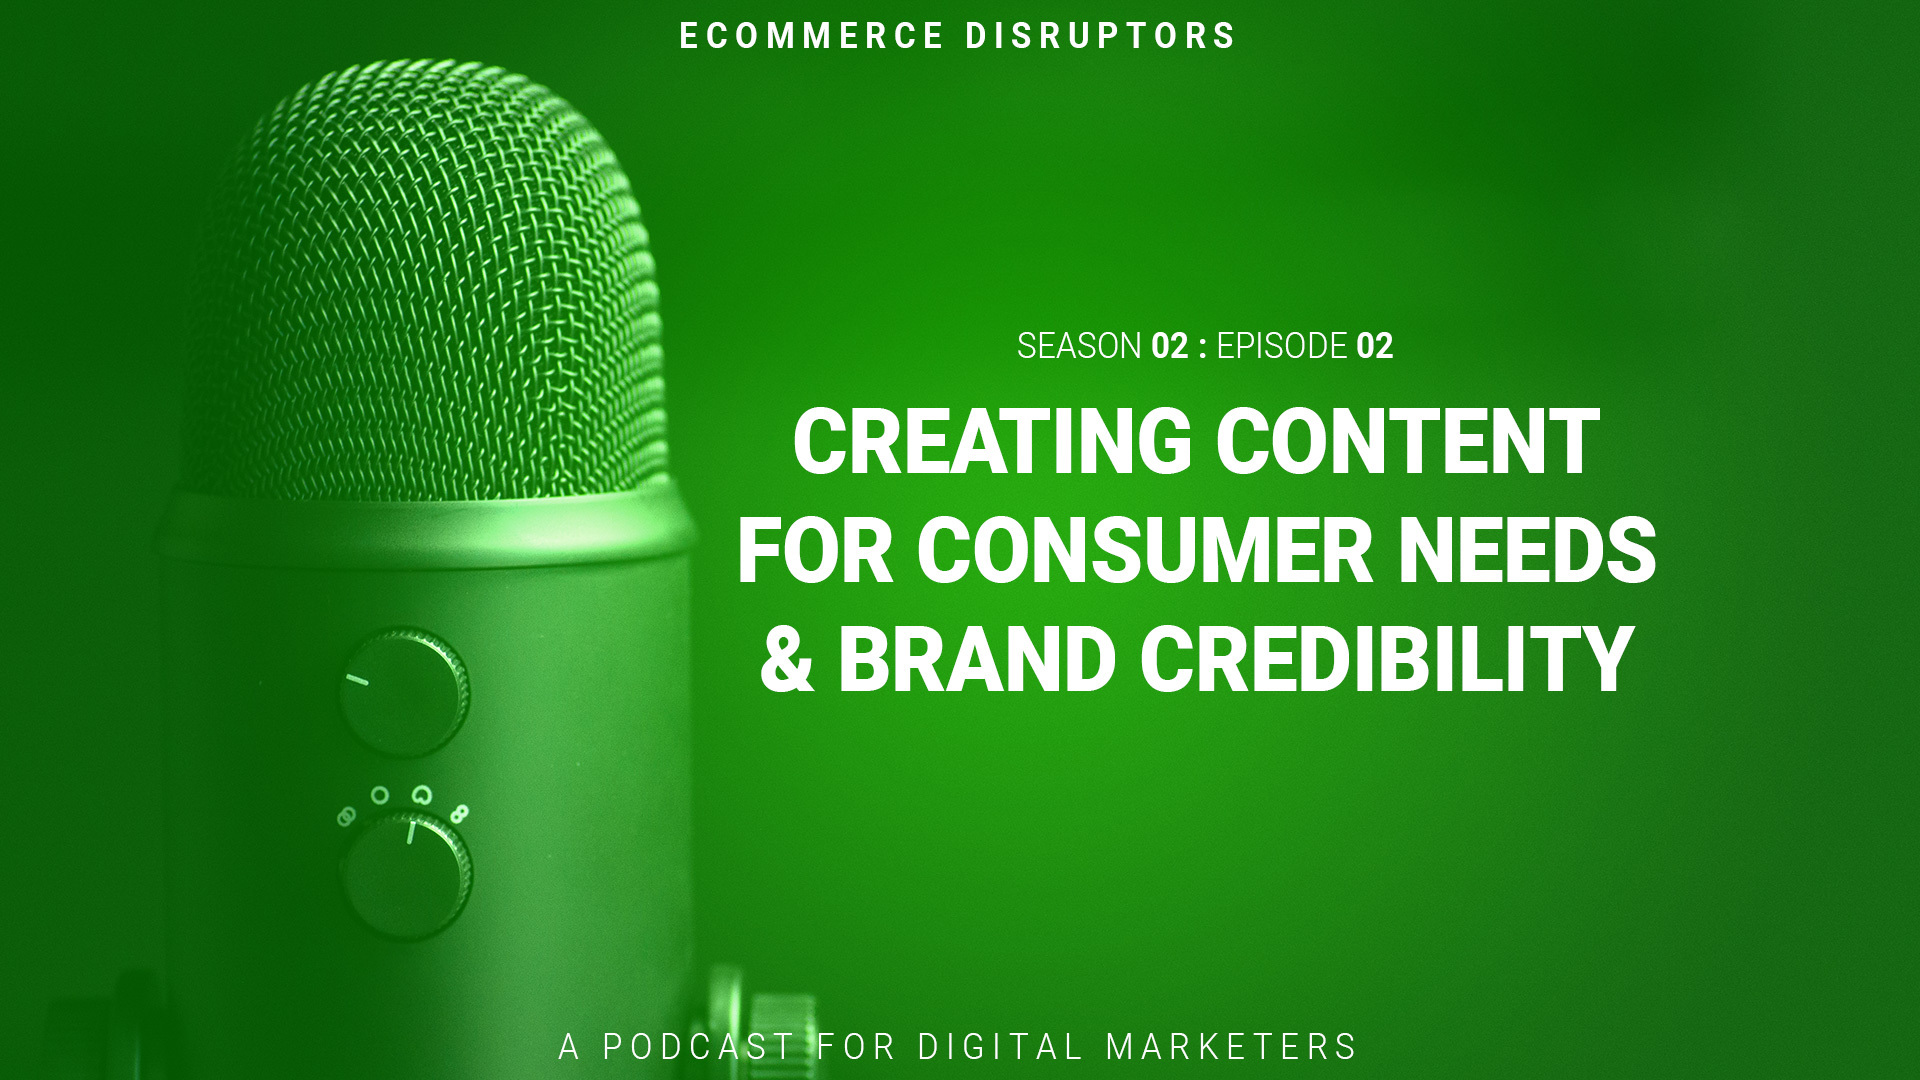 Creating Content for Consumer Needs & Brand Credibility